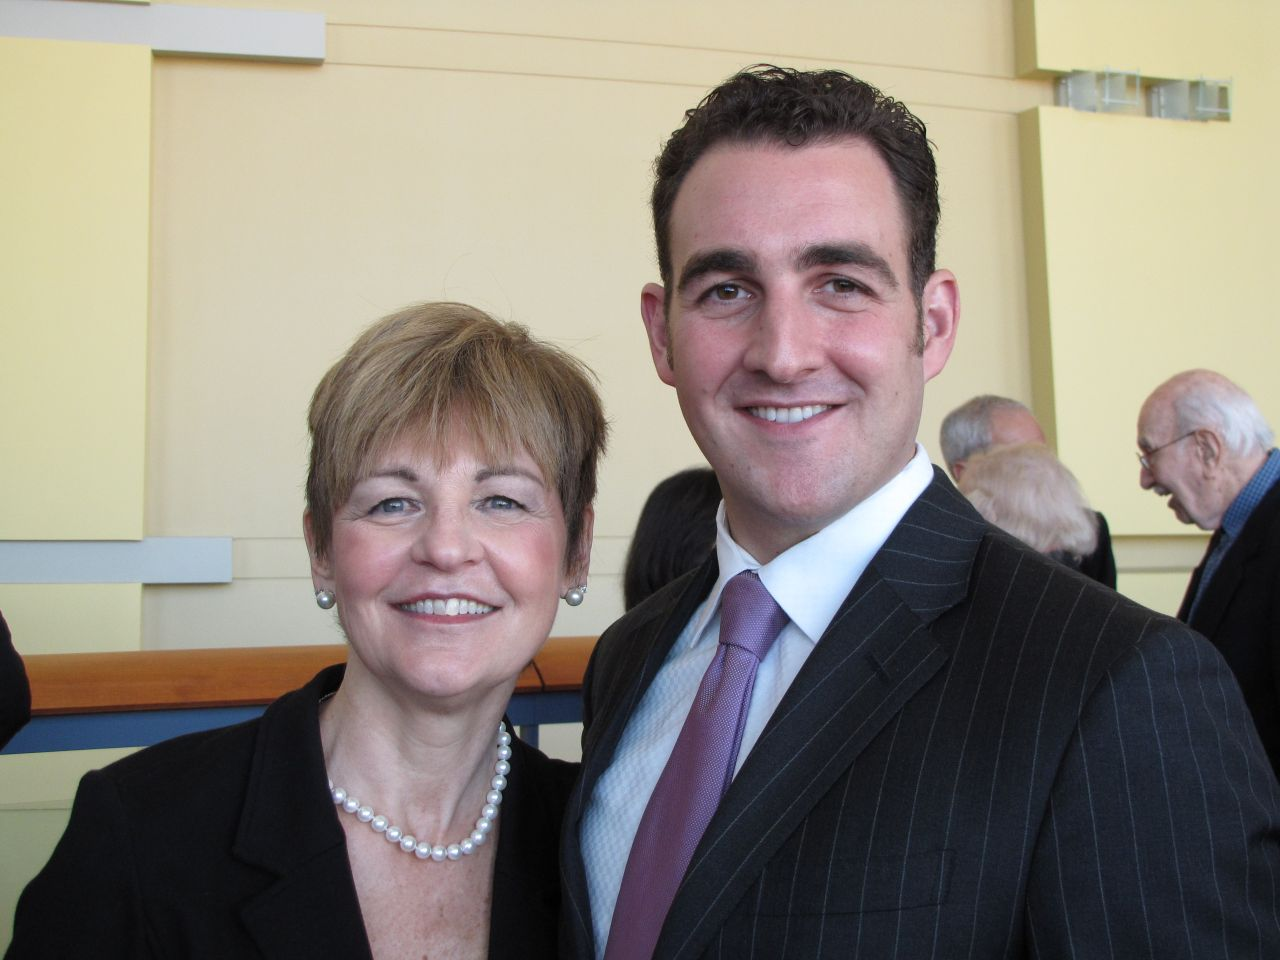 Former ISBA President Cheryl Niro with her son, Christopher, who was admitted to the bar on Thursday.